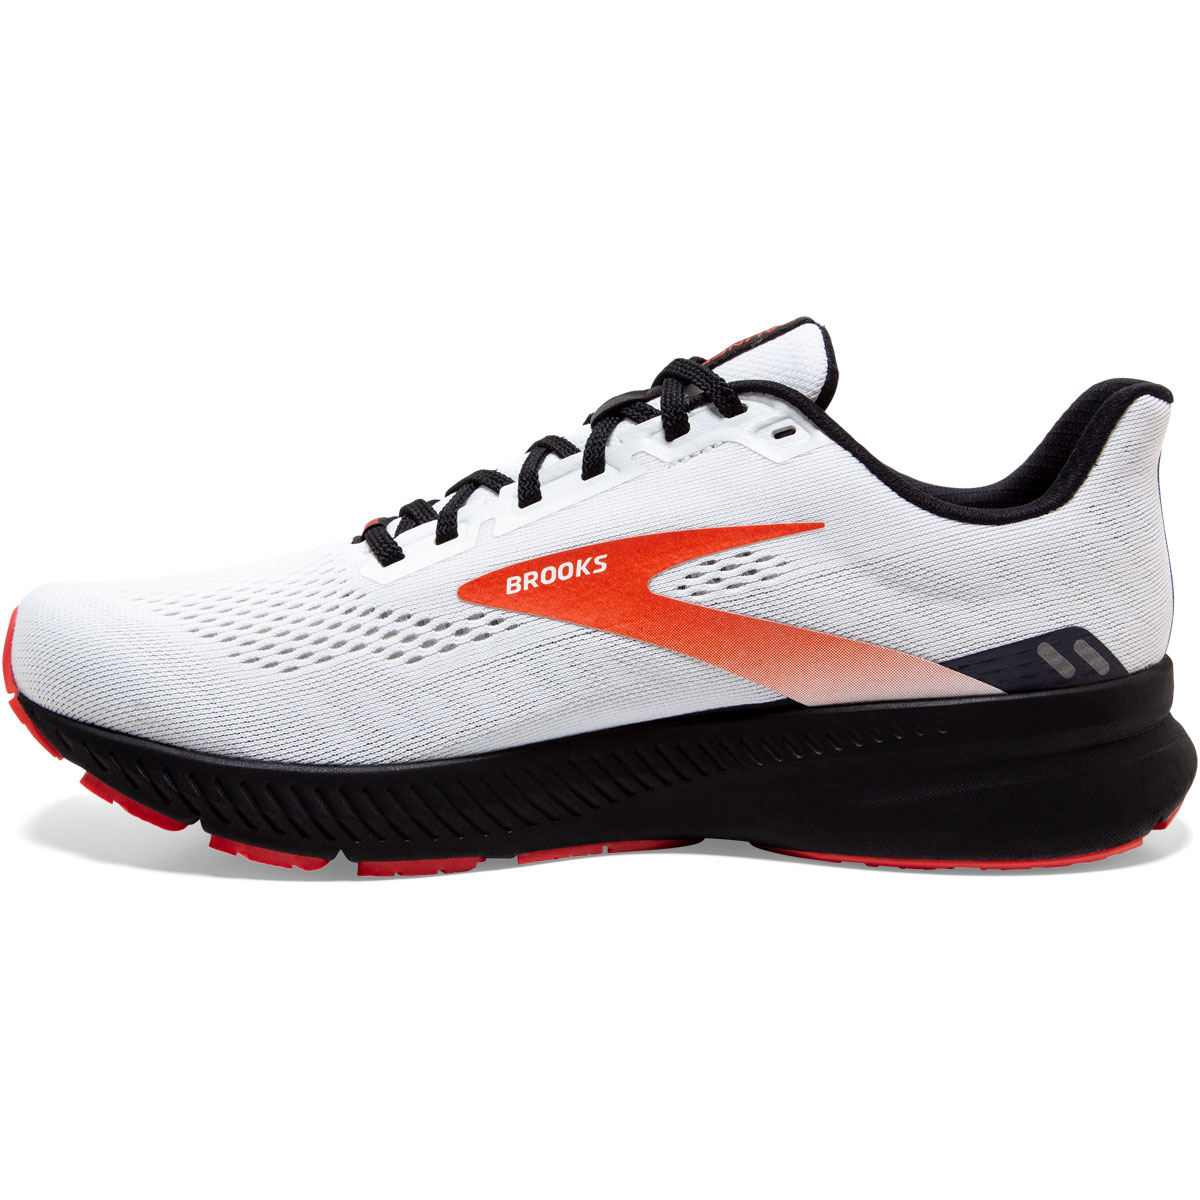 Men's Brooks Launch 8 Running Shoe - Color: White/Black/Red - Size: 7 - Width: Regular, White/Black/Red, large, image 2